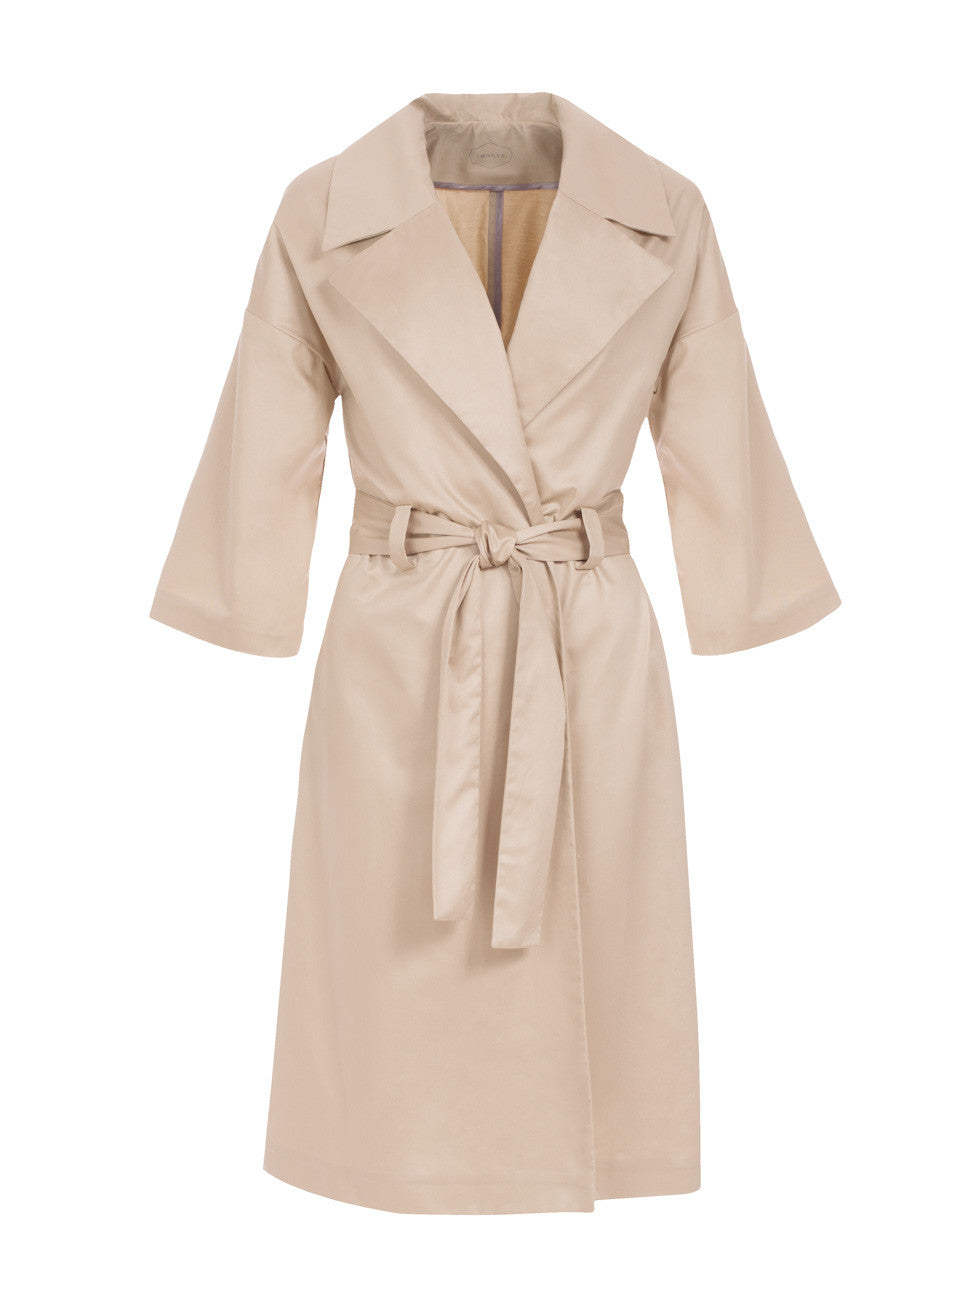 IMAUVE_Trench_Coat_Beige